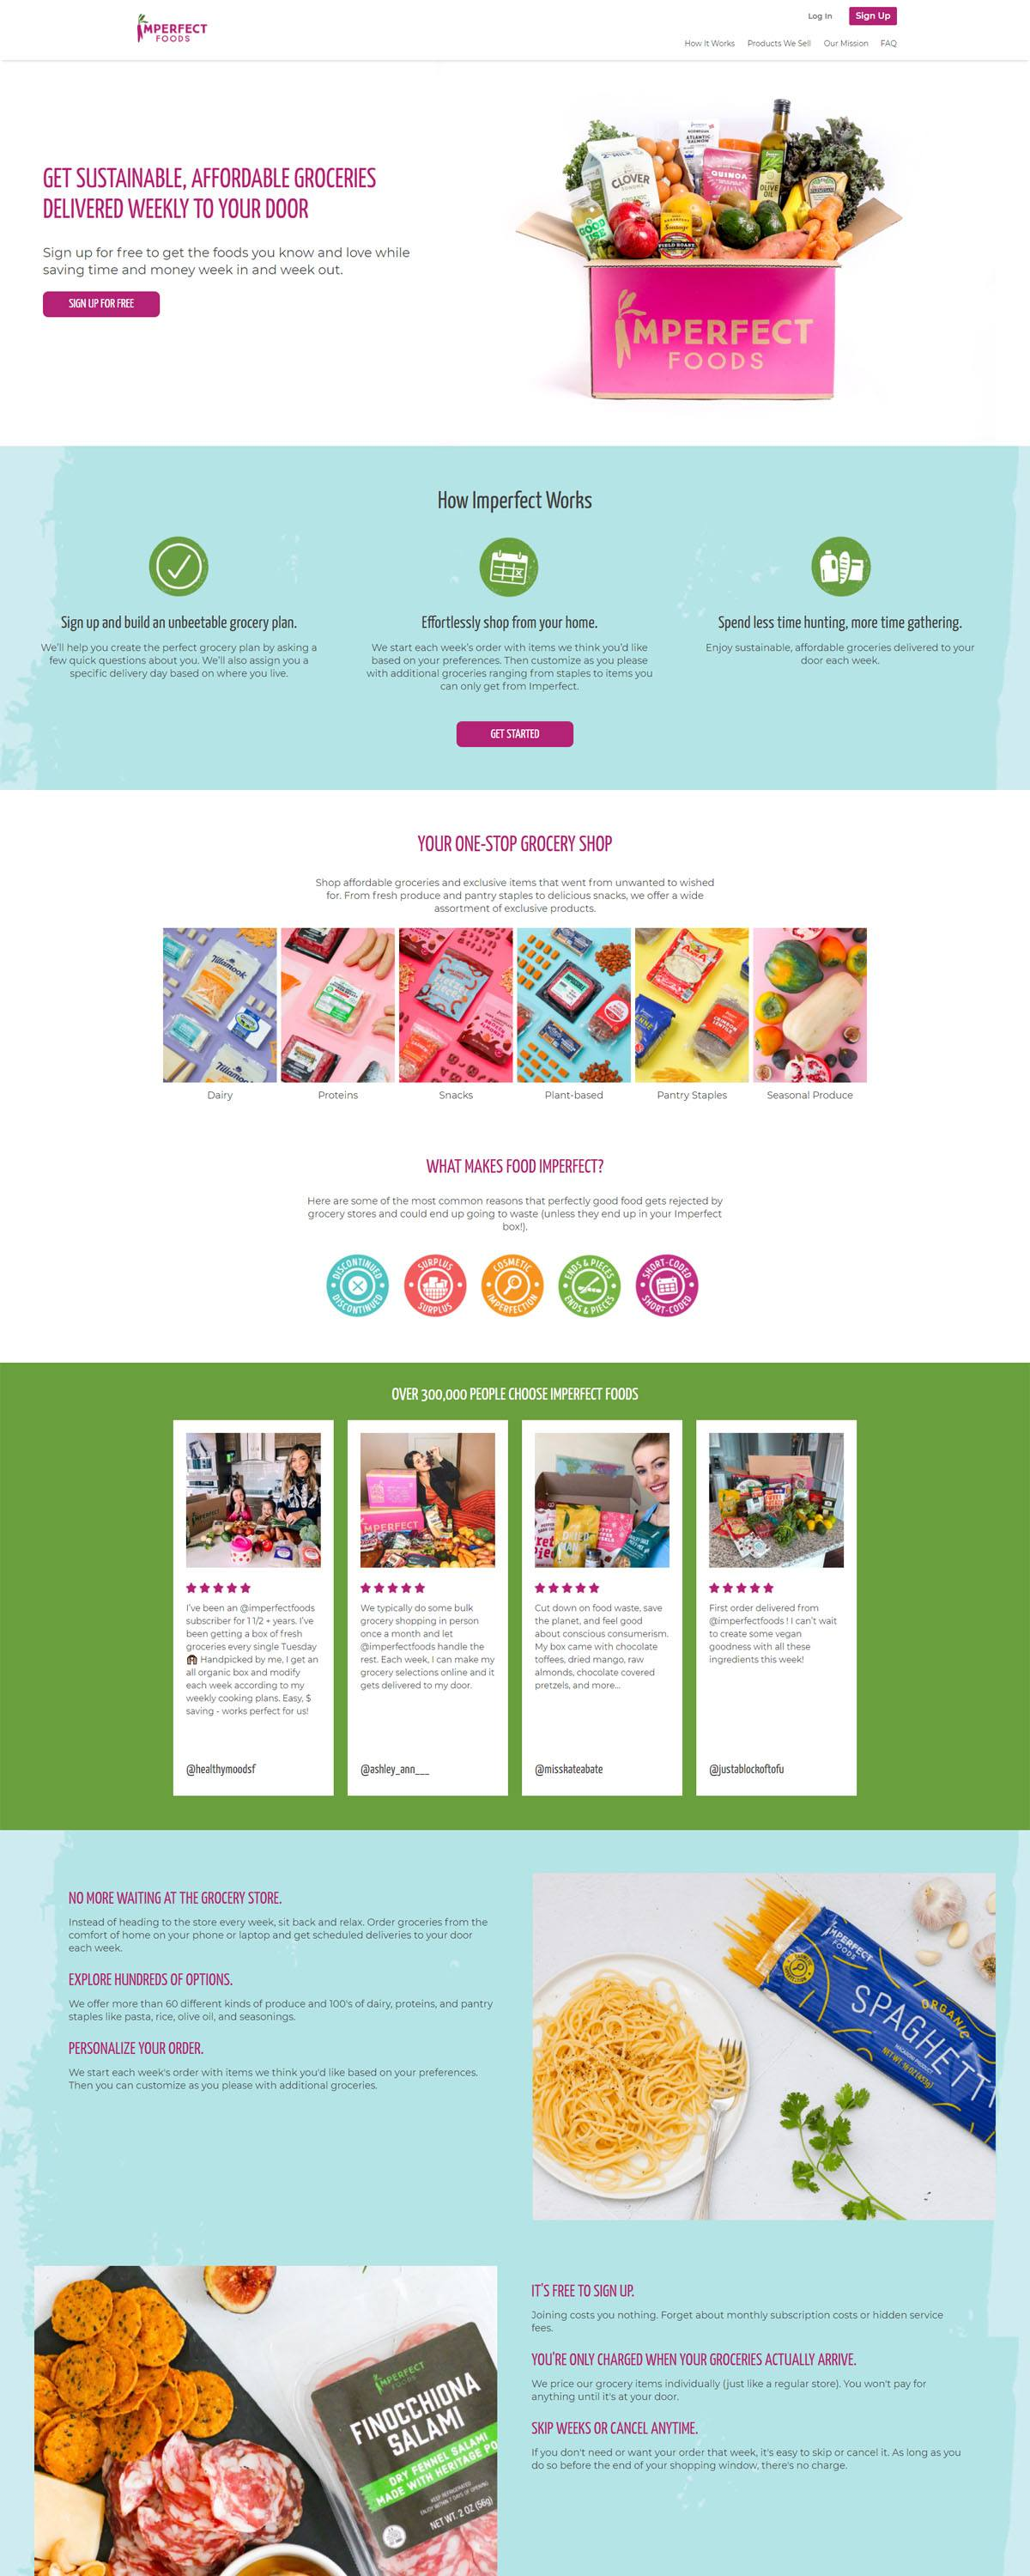 eCommerce website: Imperfect Foods